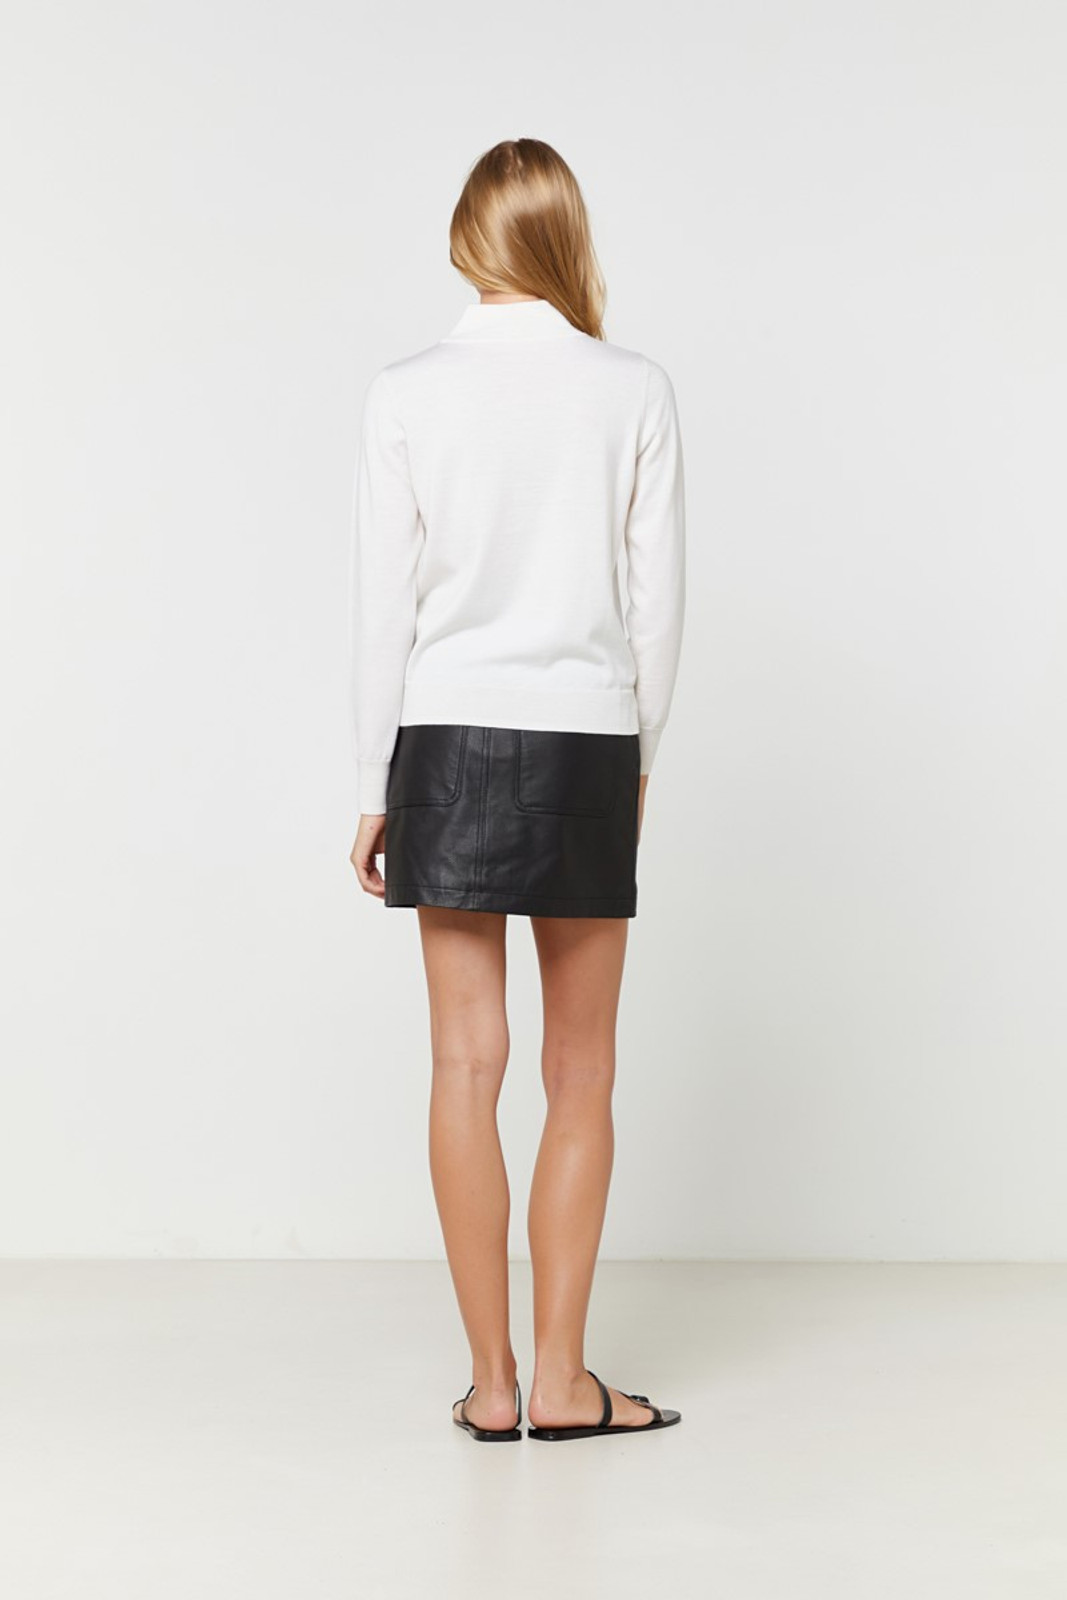 Elka Collective Rory Knit Neutrals  4